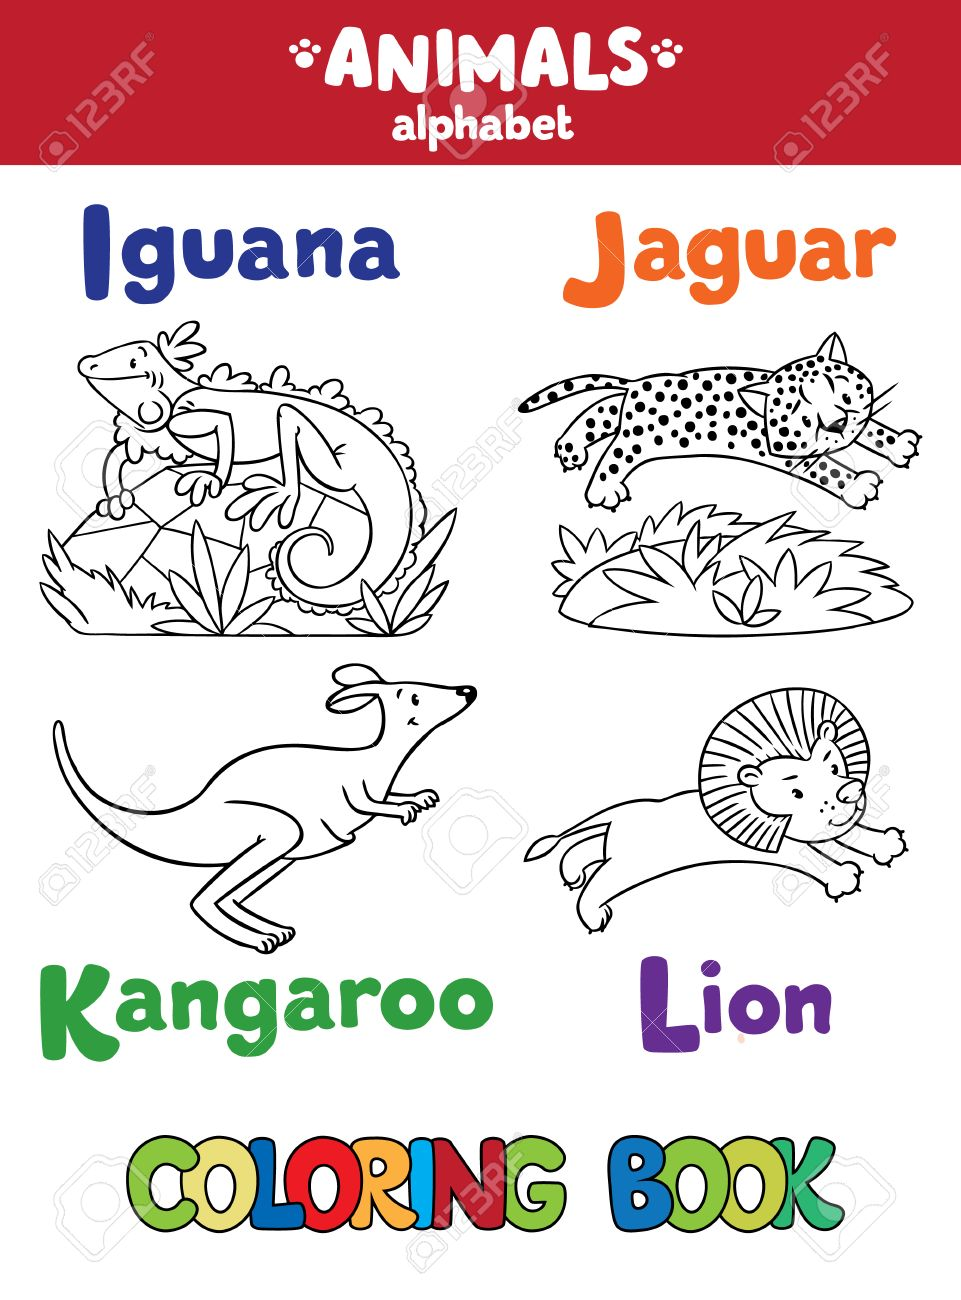 Coloring Book Or Coloring Picture Of Funny Iguana, Jaguar ...